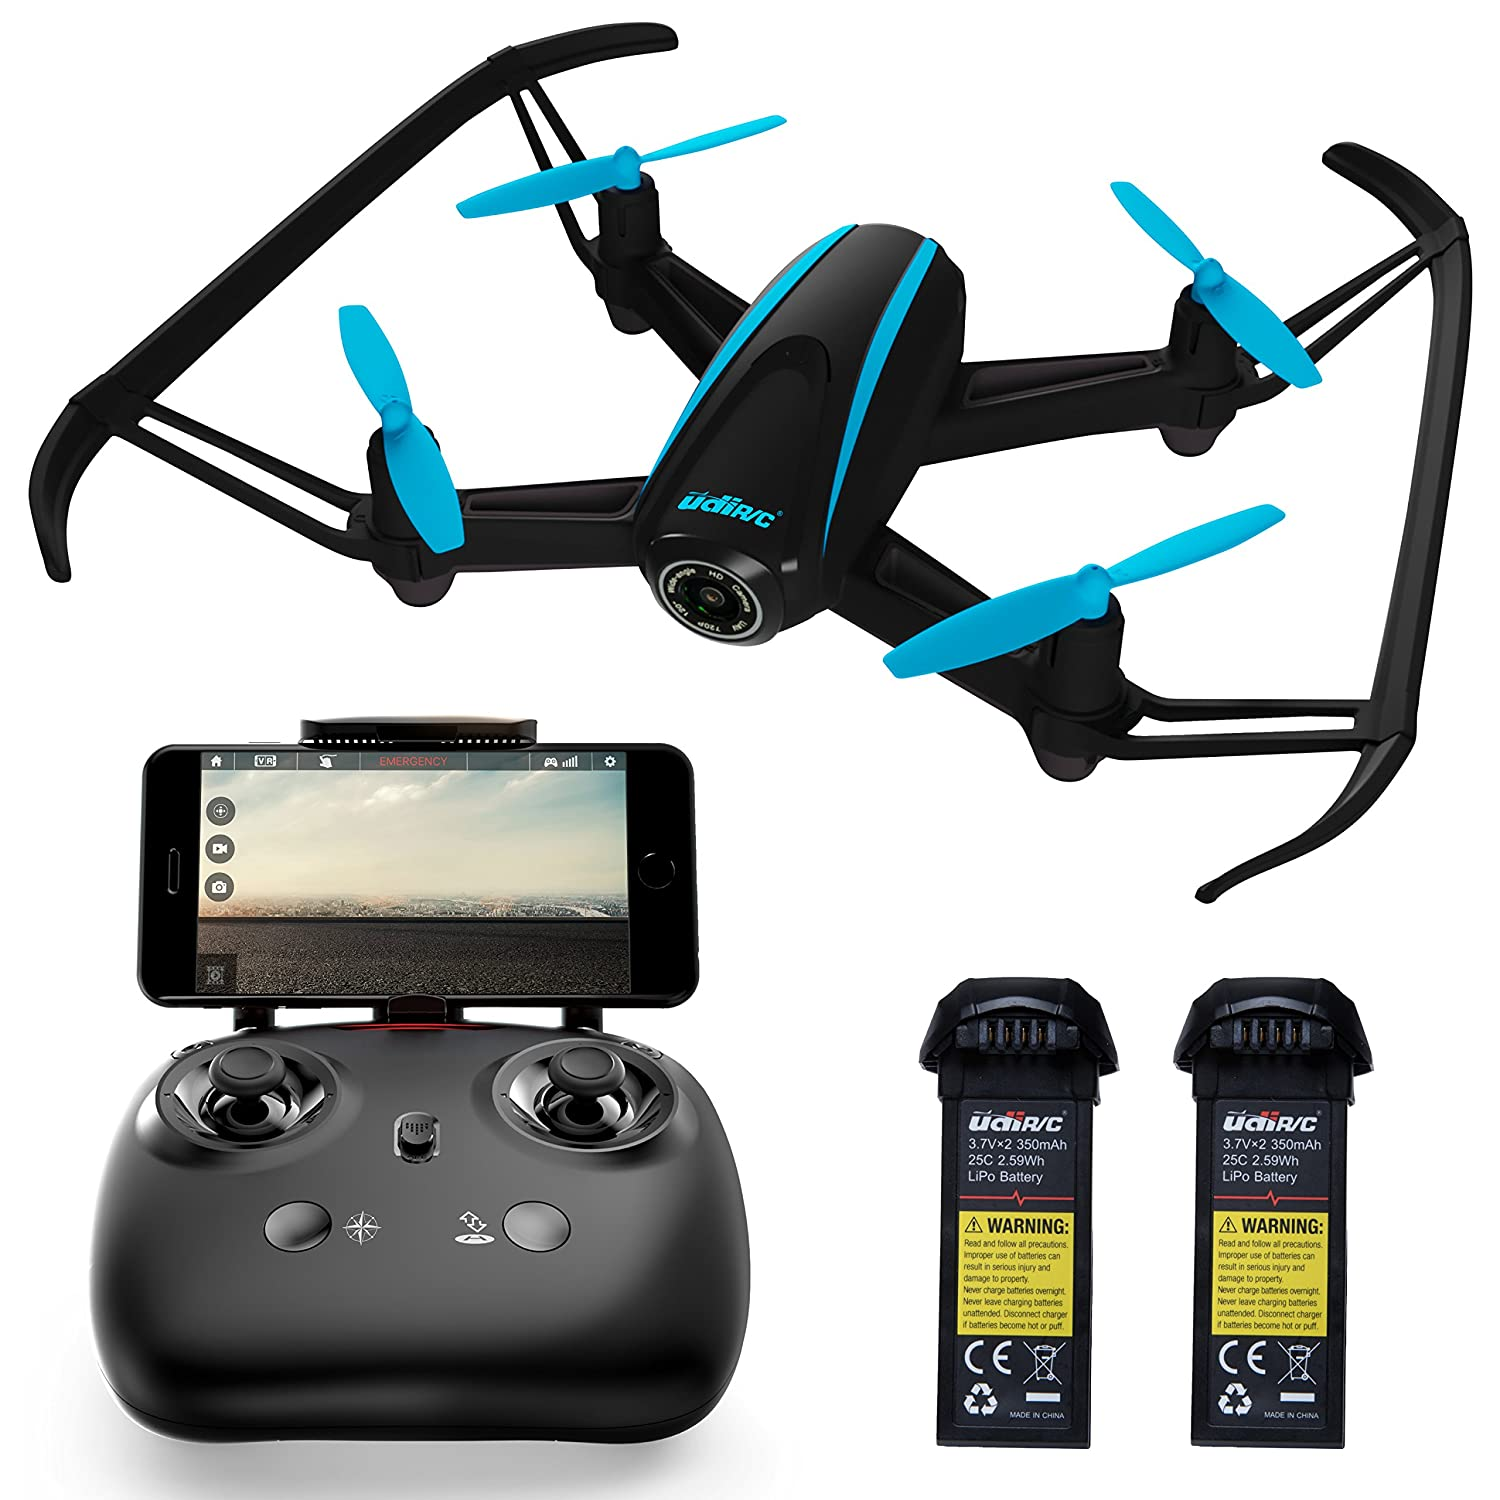 Dragonfly Indoor Outdoor WiFi FPV Drone with 2 Batteries